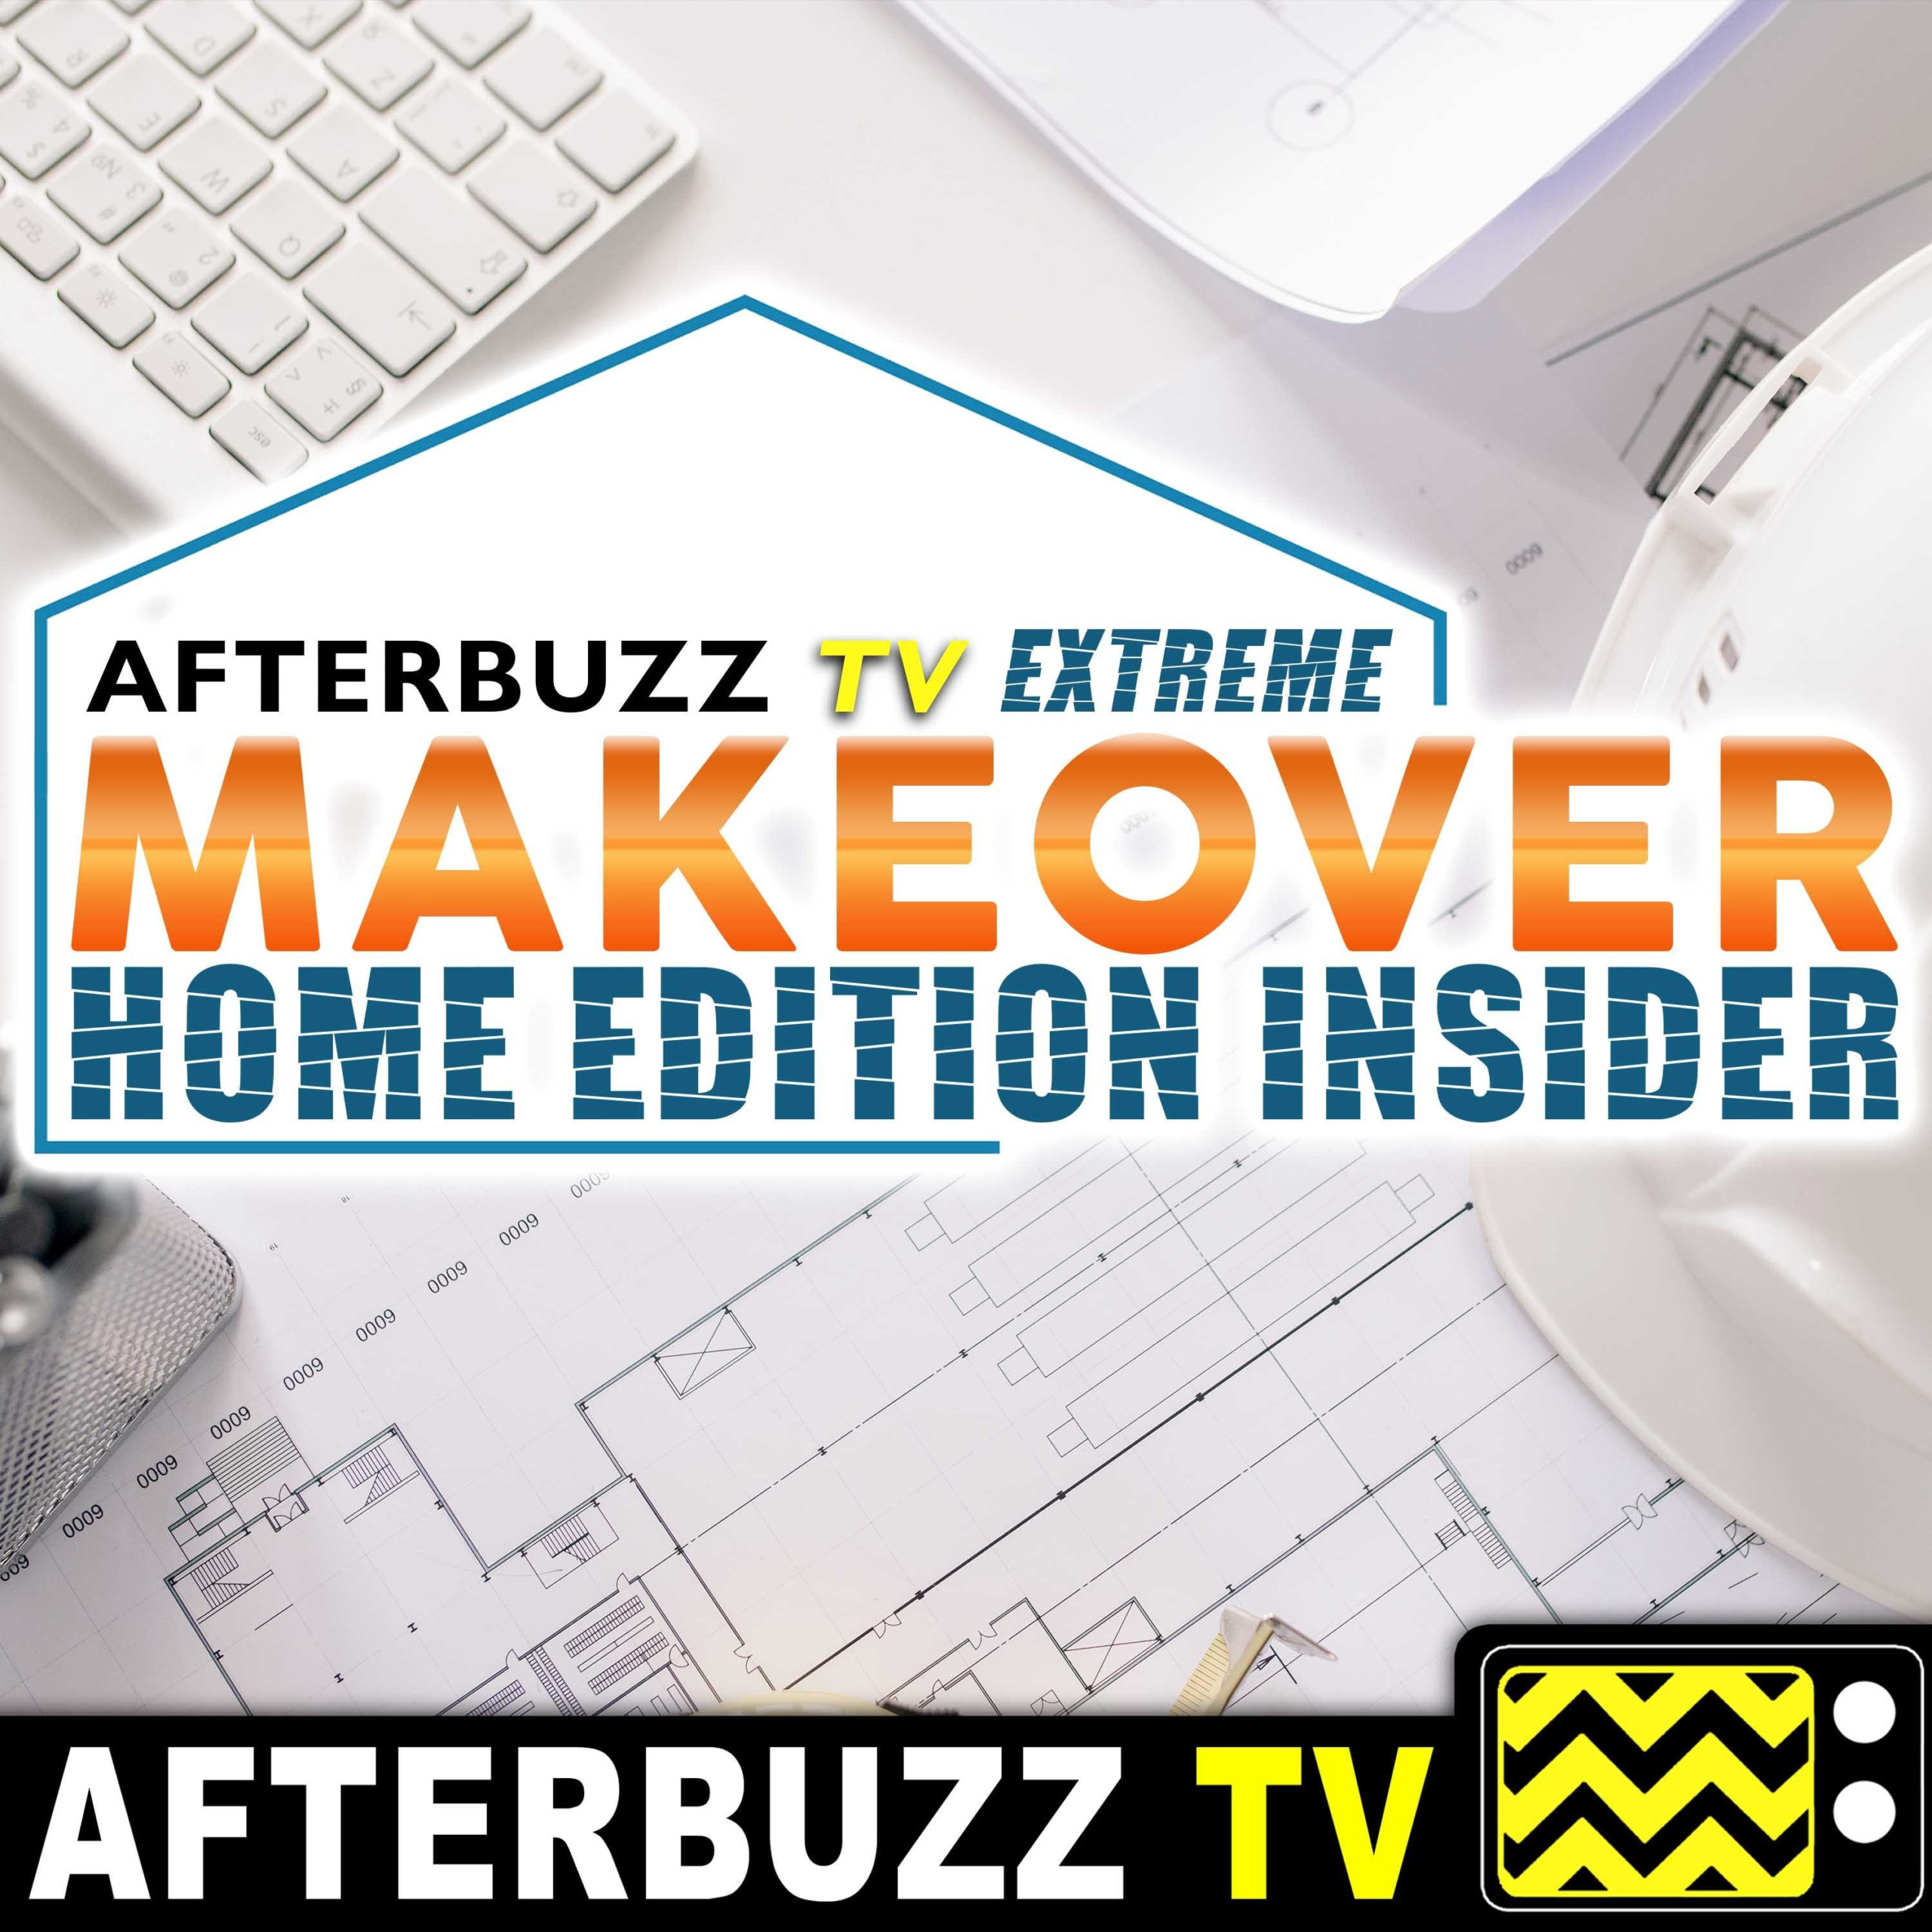 Extreme Makeover: Home Edition Insider